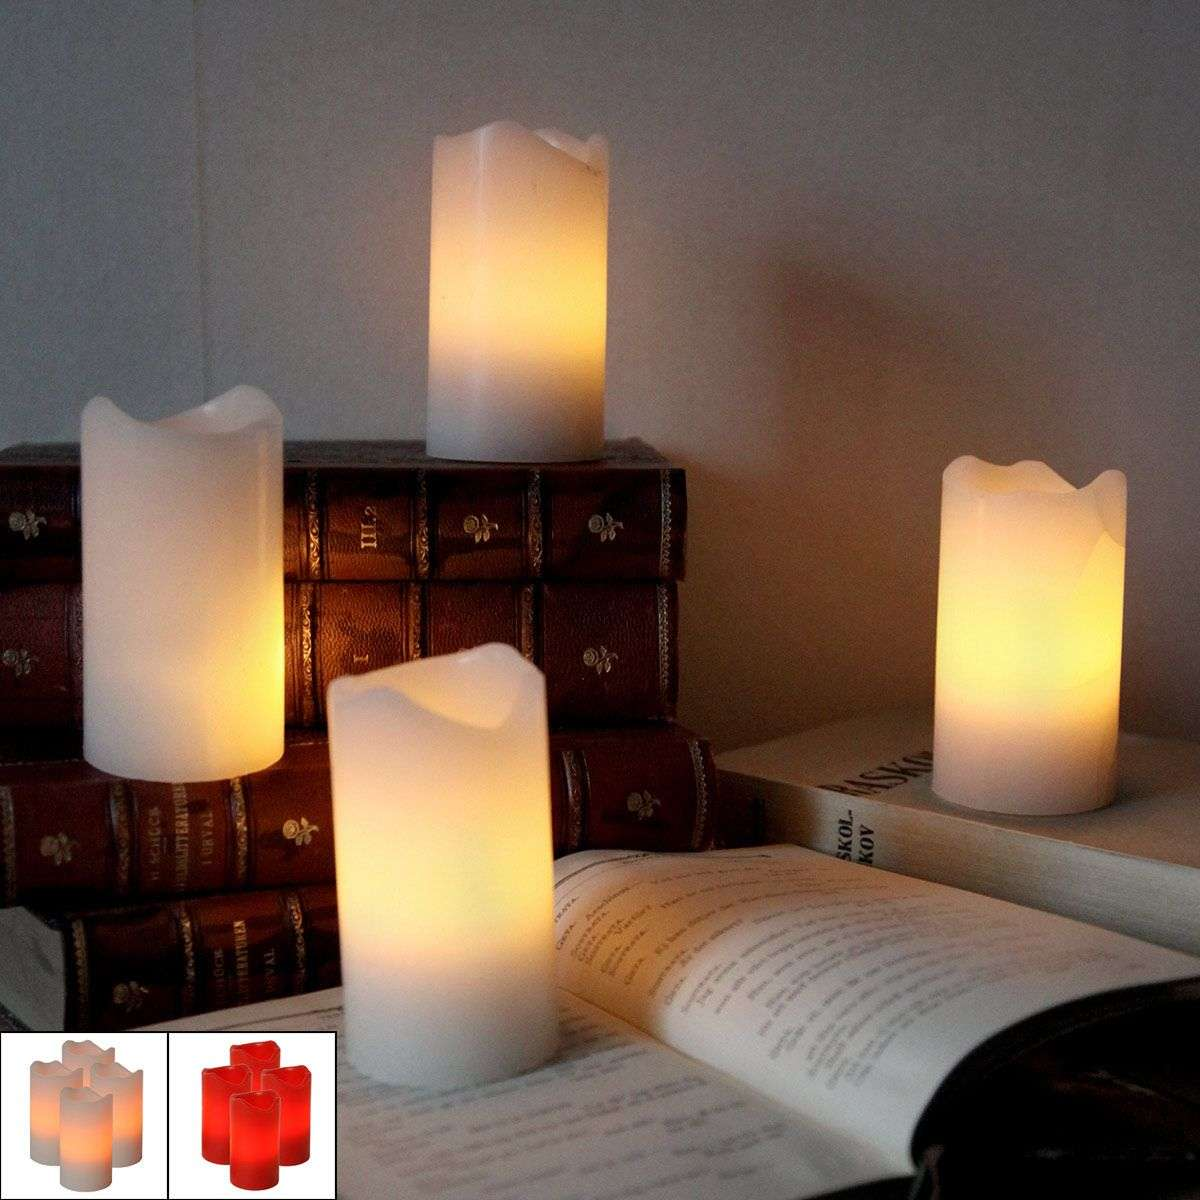 Set of 4 LED candles Candle with remote control-1522511X-31